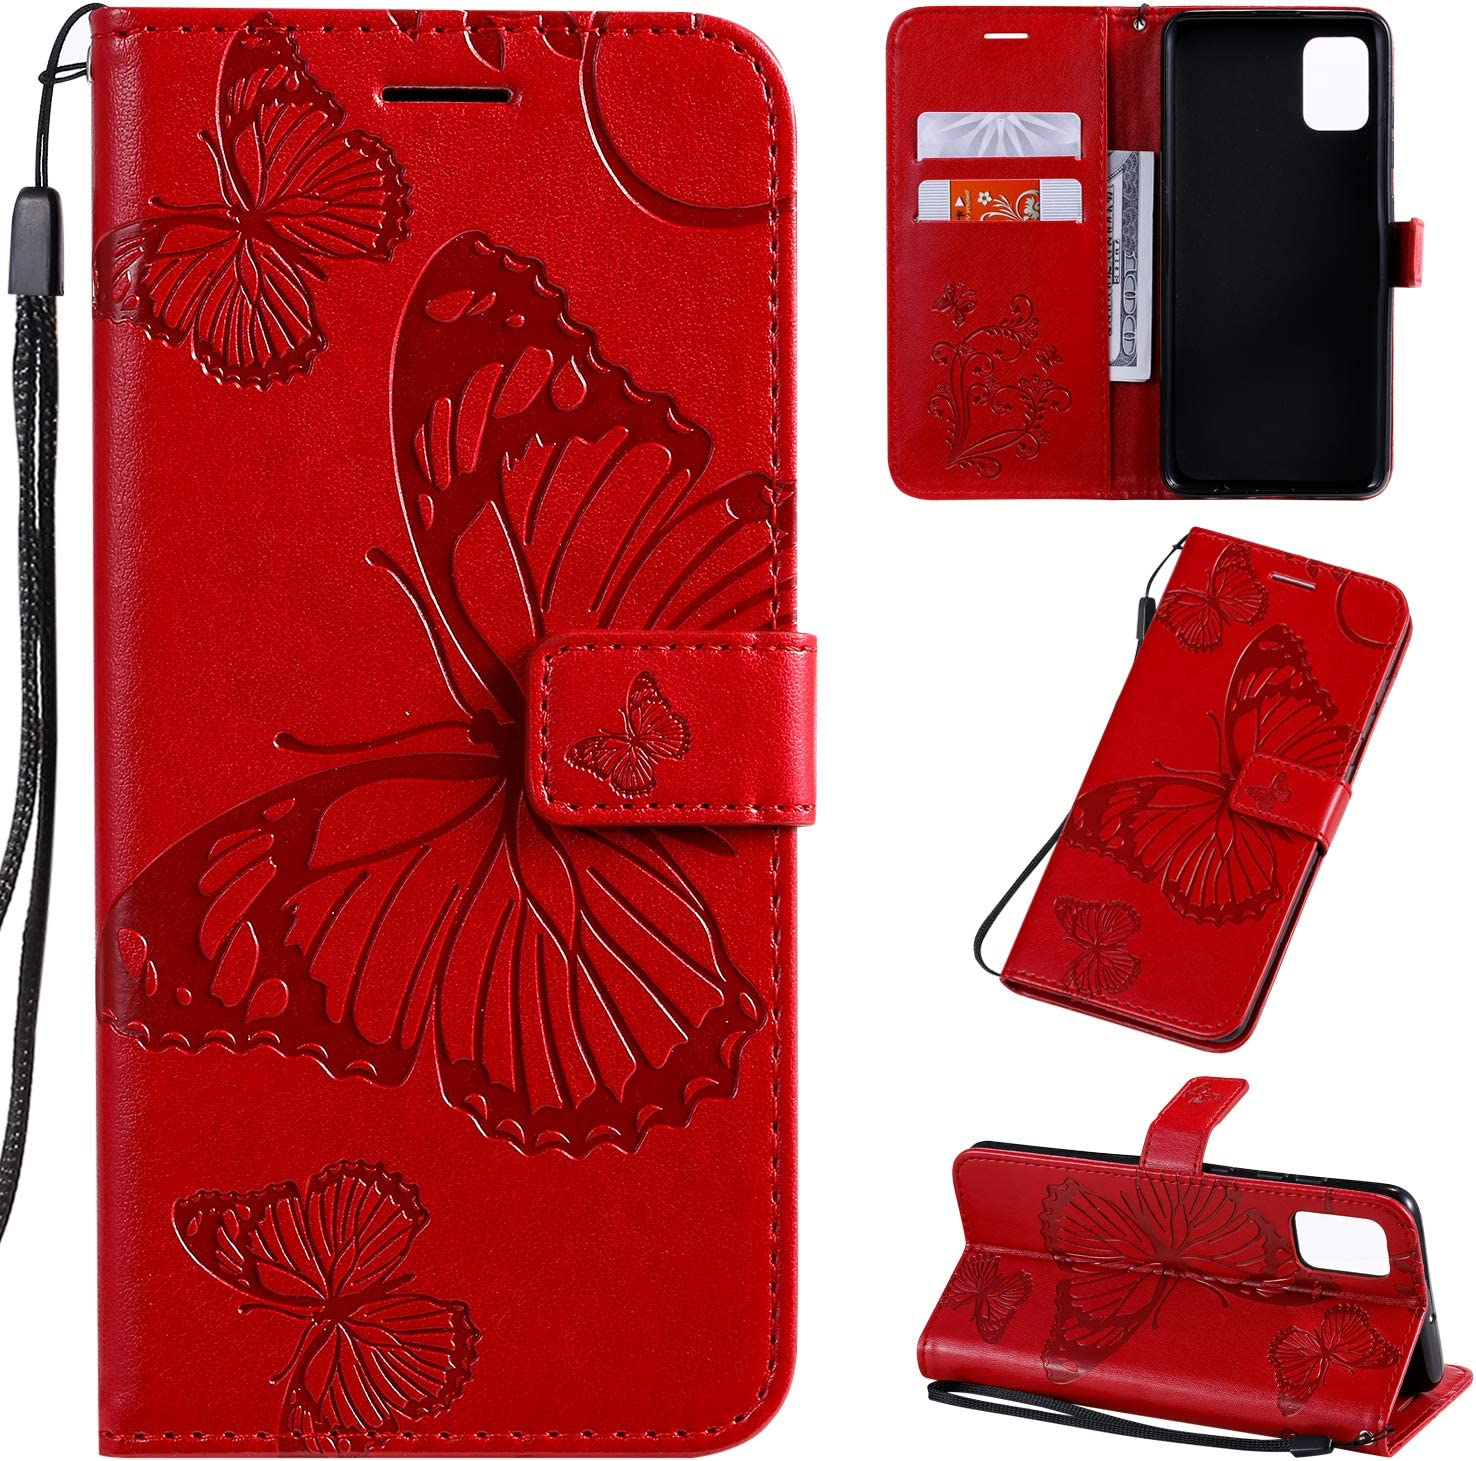 Department store Amocase Wallet Leather Case with 2 Galax for Max 40% OFF Stylus Samsung in 1